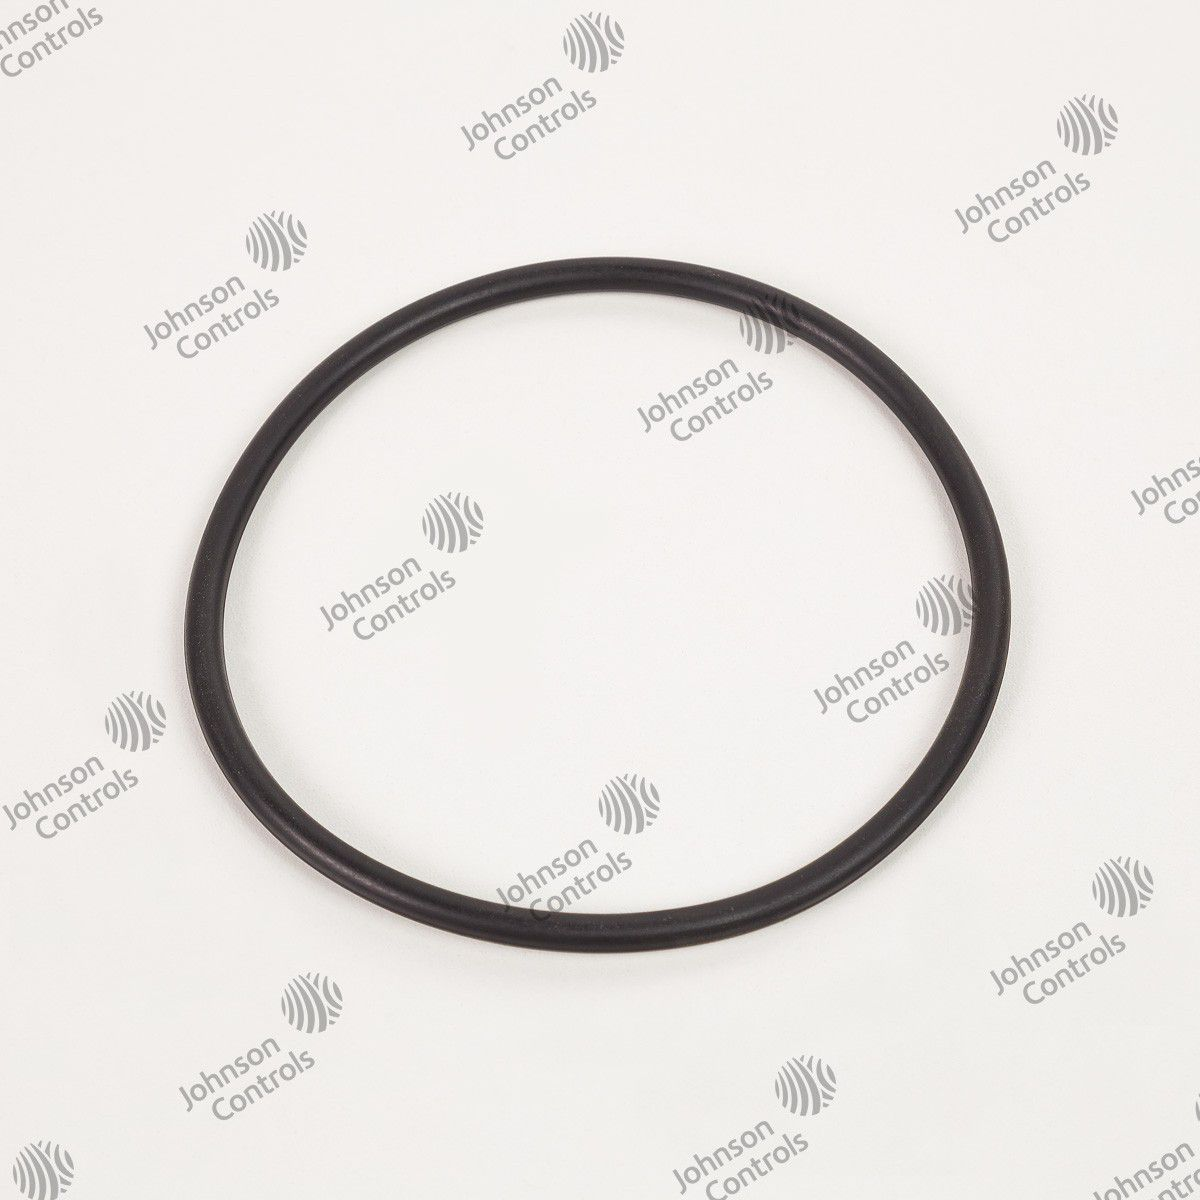 ANEL ORING 104,14/5,33 2347 - 1331+164